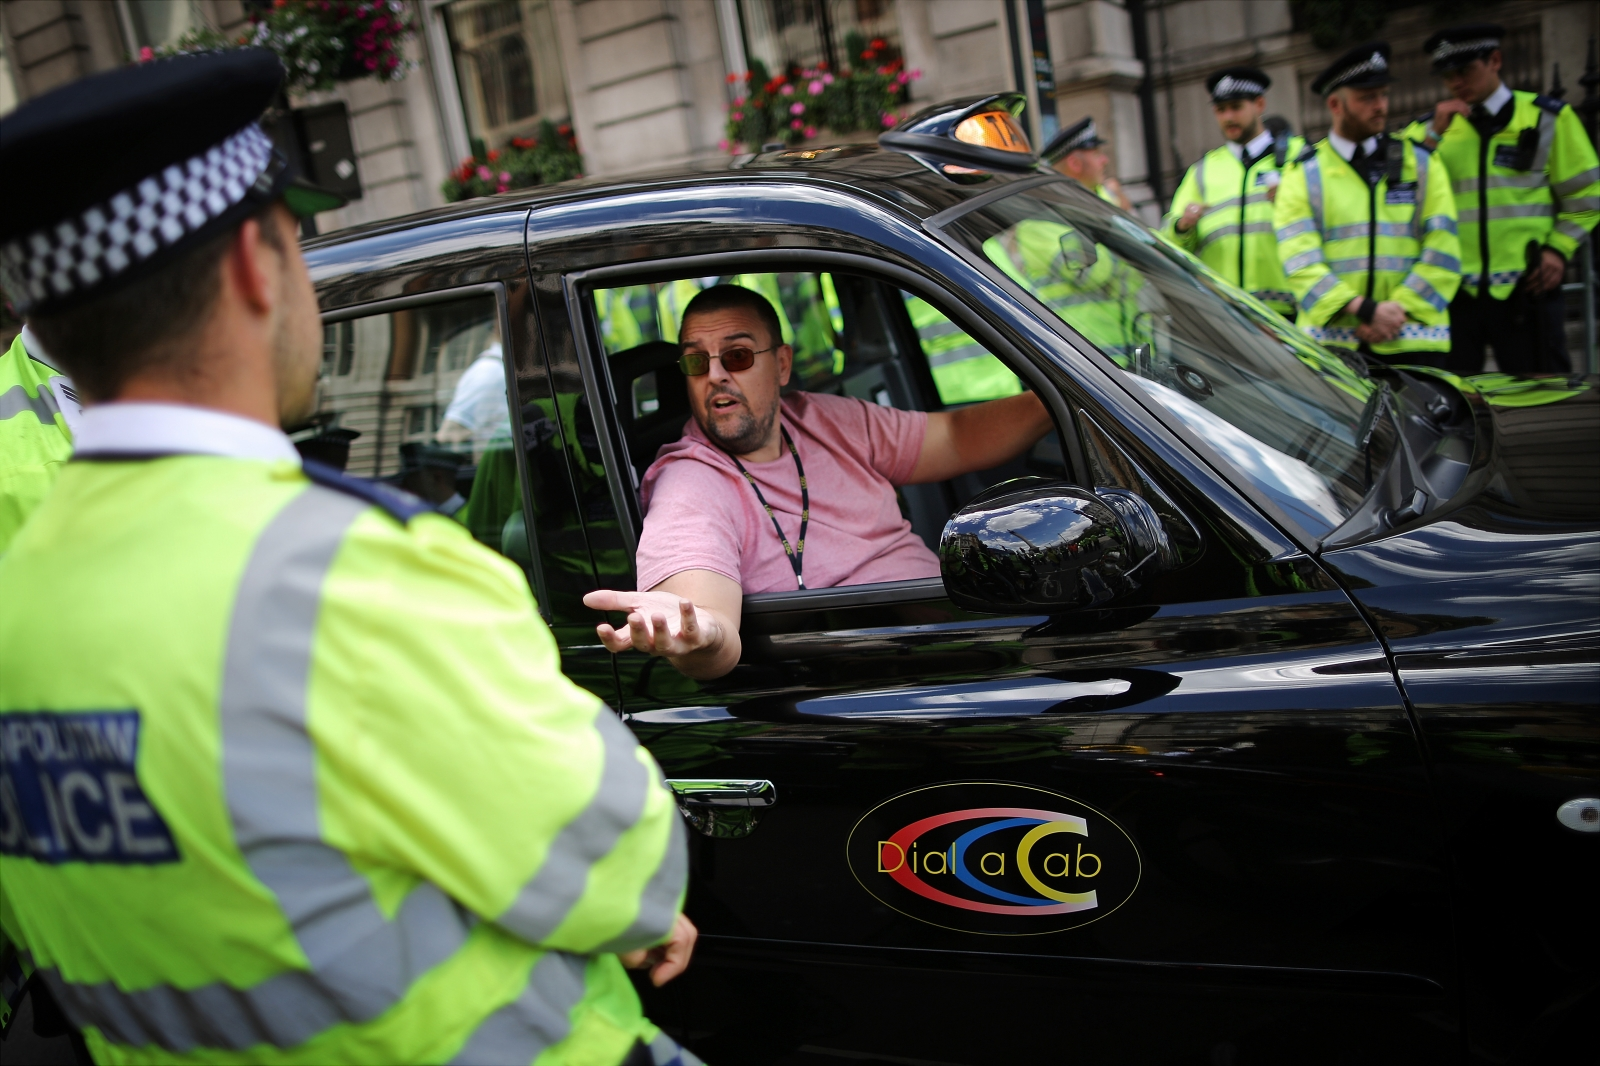 Black taxi driver during protest against cab app Uber in London